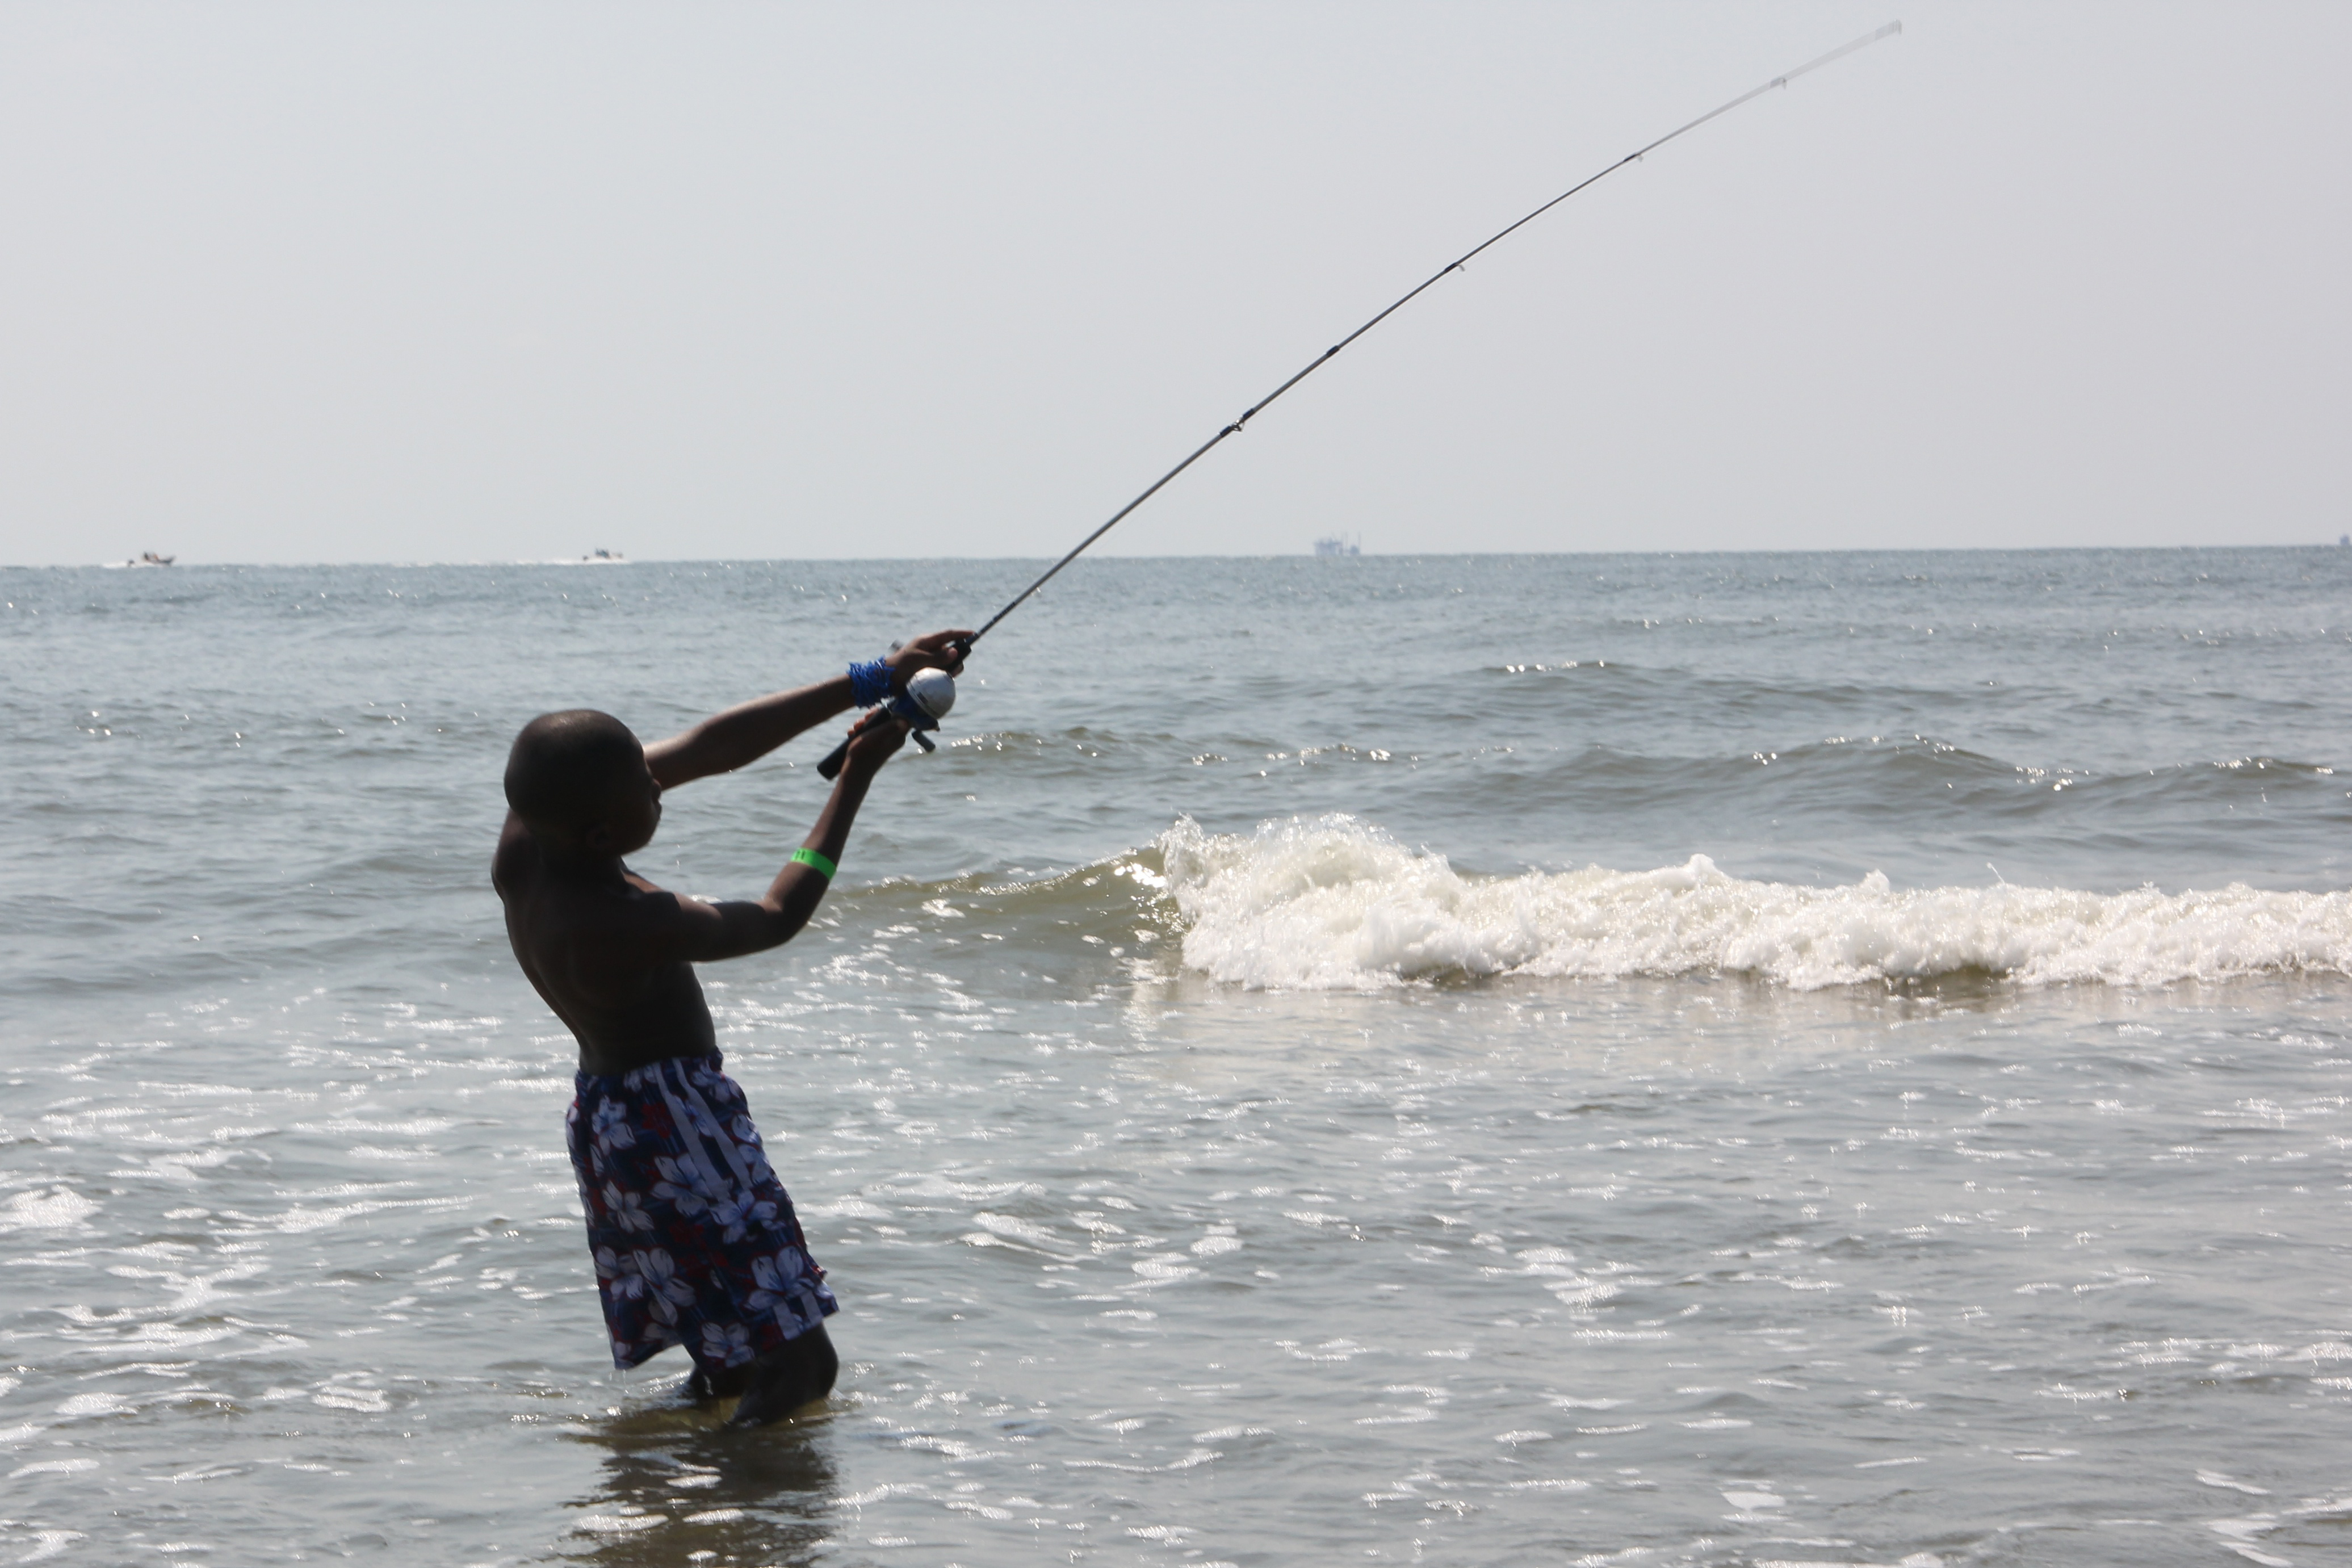 A boy casting with his fishing pole while wading in the water on Elmer's Island beach.